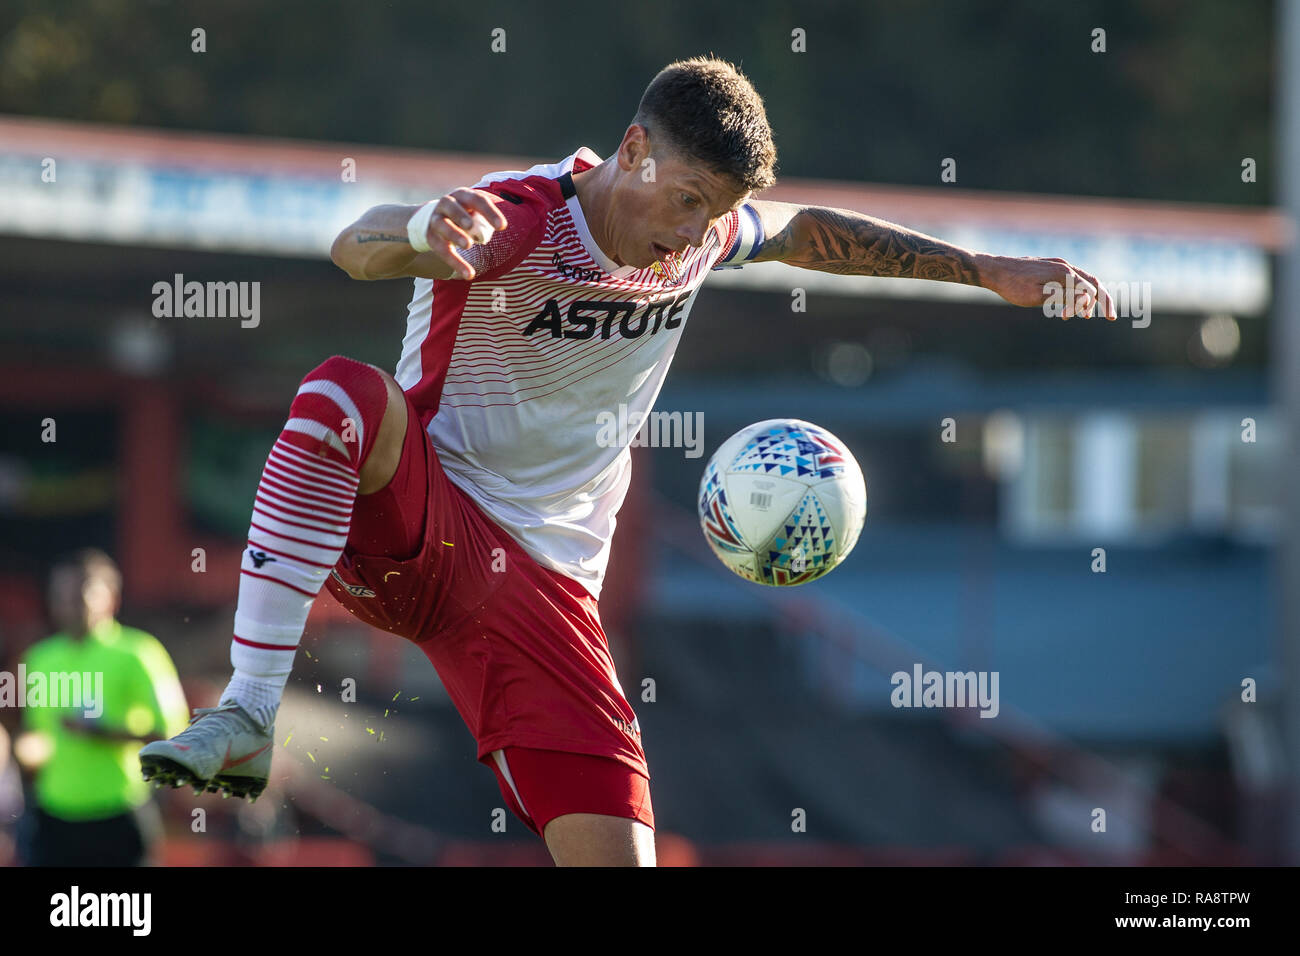 Alex Revell, striker for Stevenage Football Club brings ball under control. - Stock Image